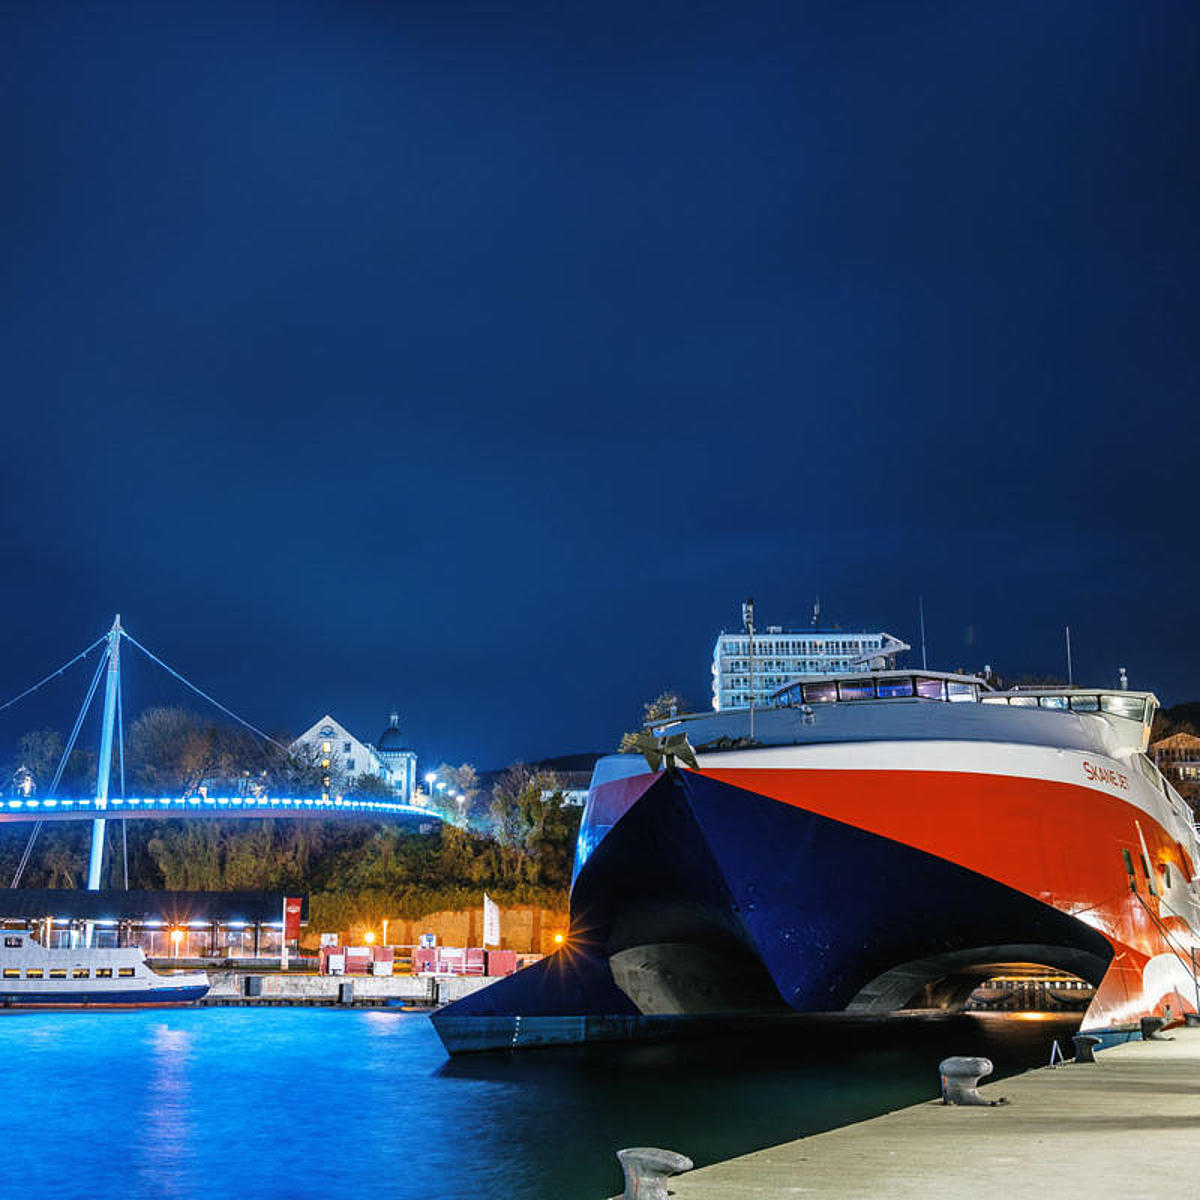 Skane Jet in the city harbour of Sassnitz by night.